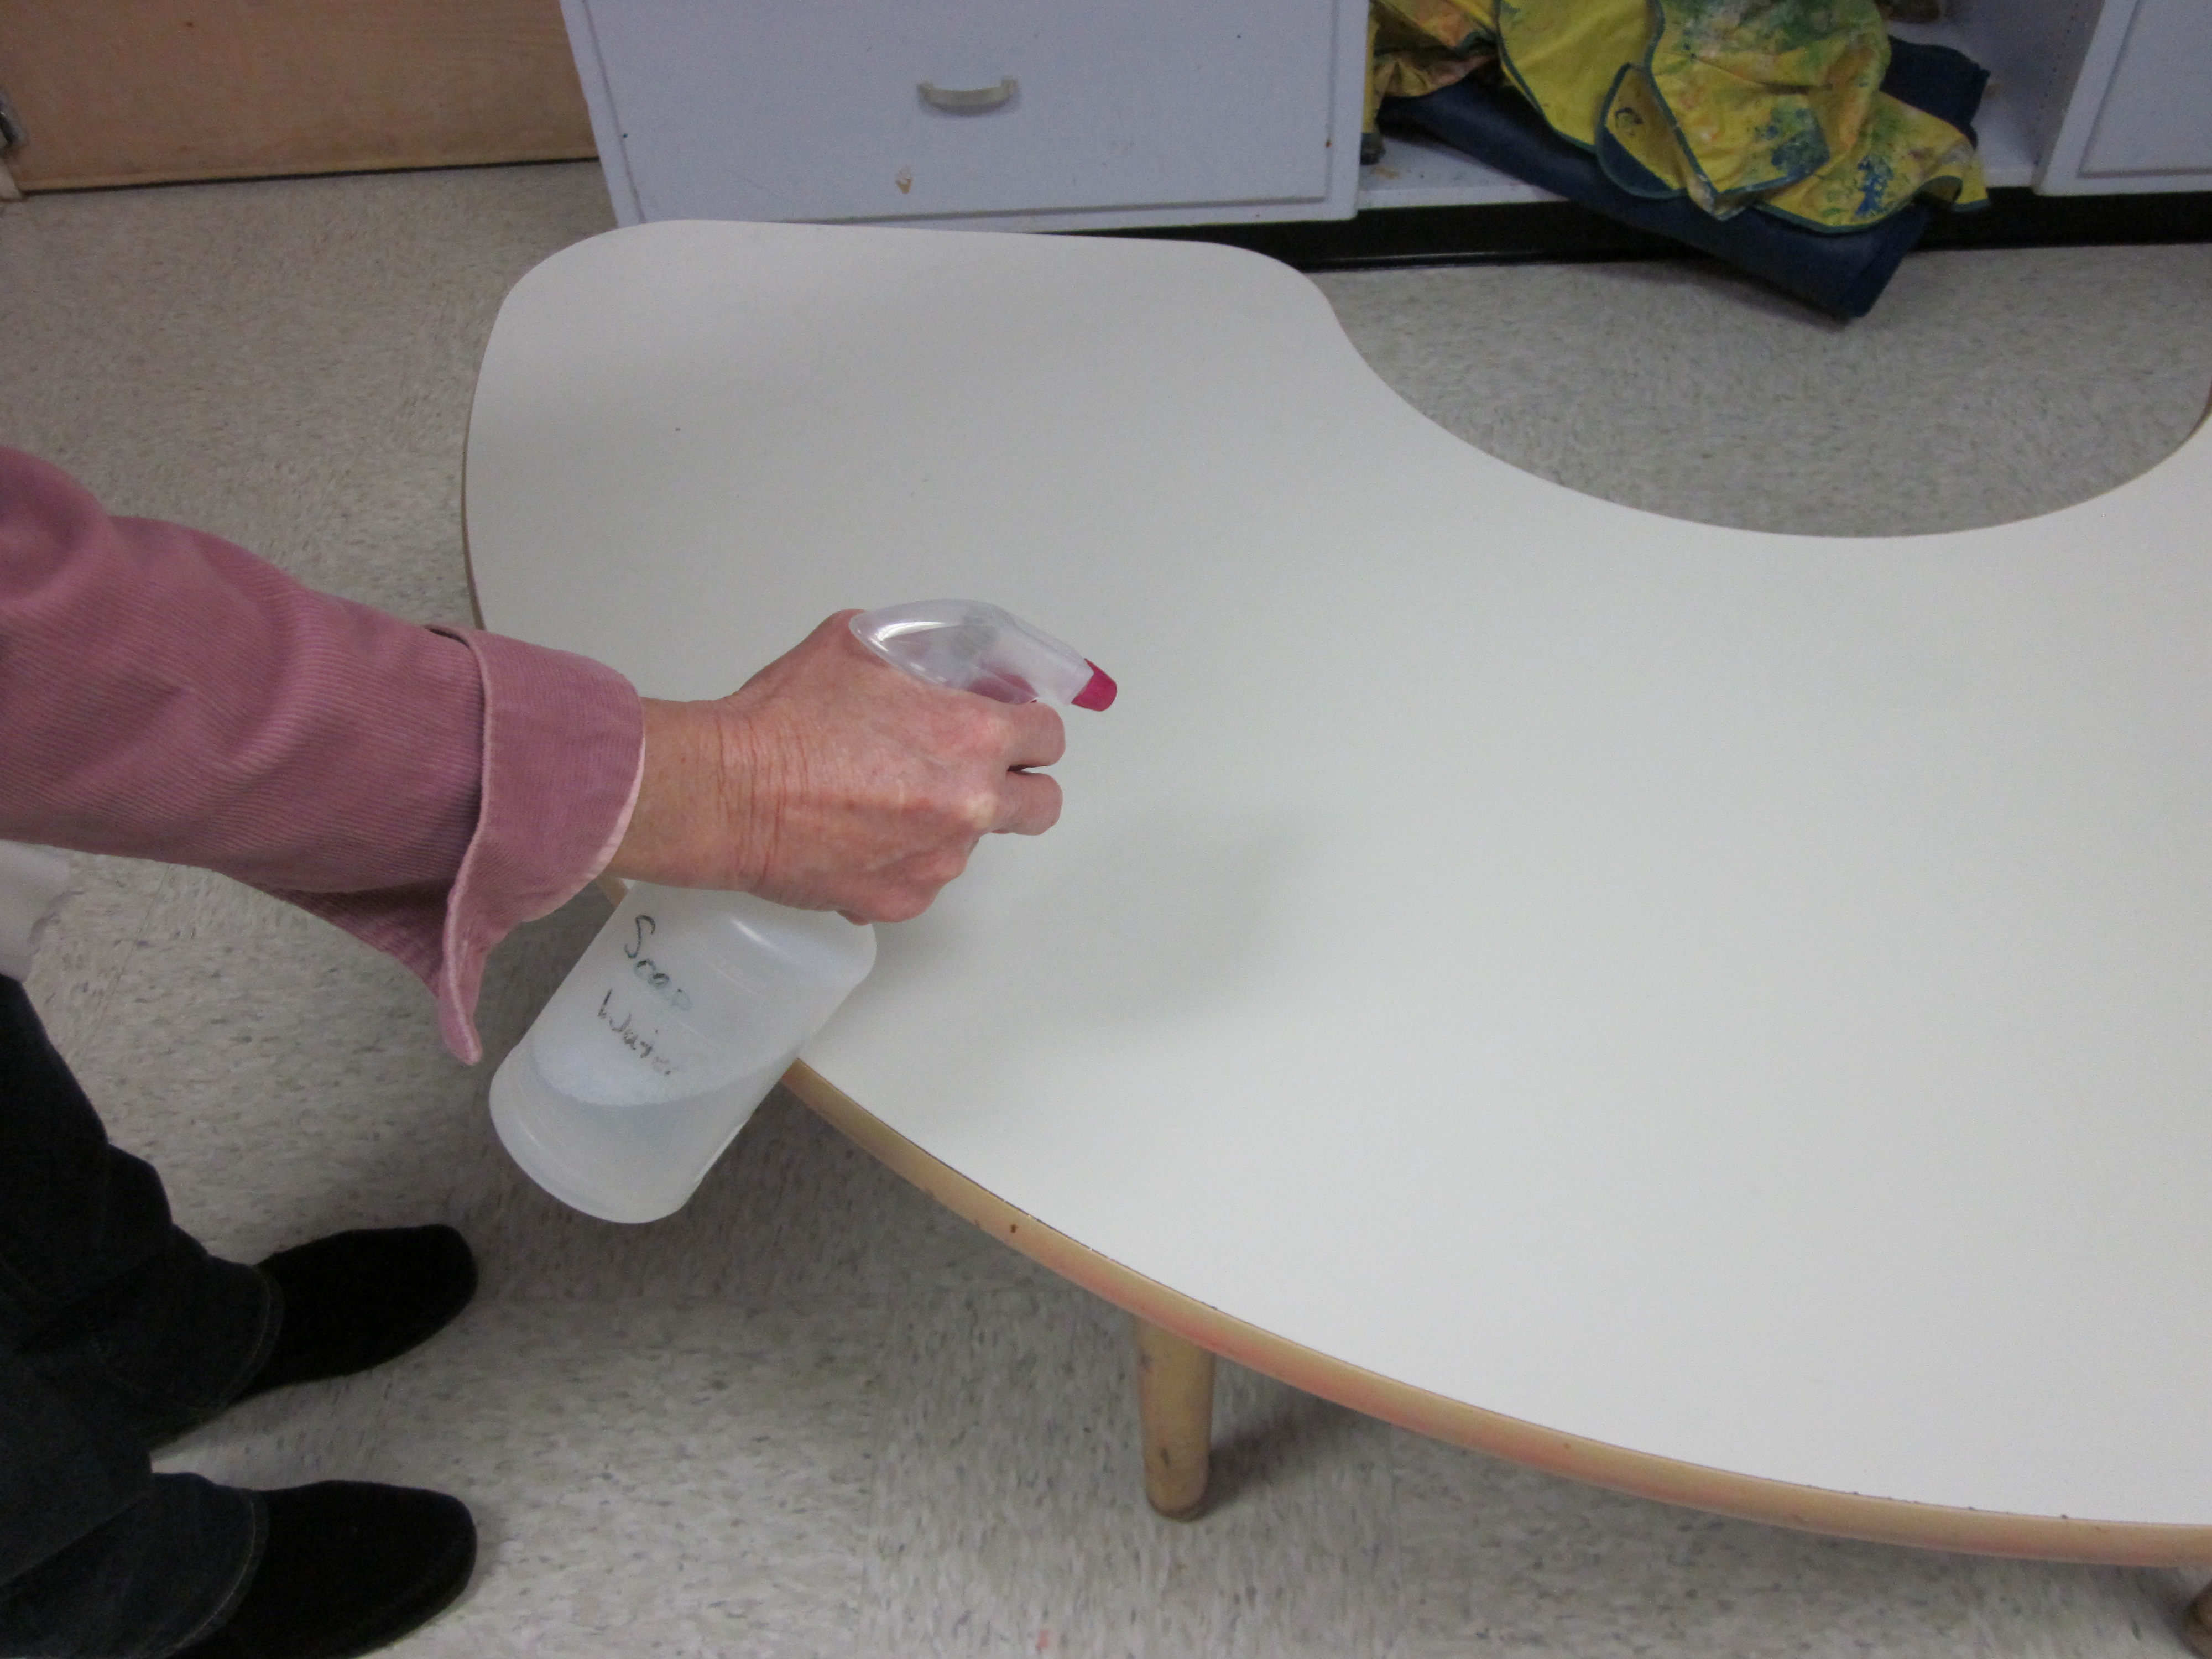 Disinfect Child Care Surfaces with a Bleach and Water